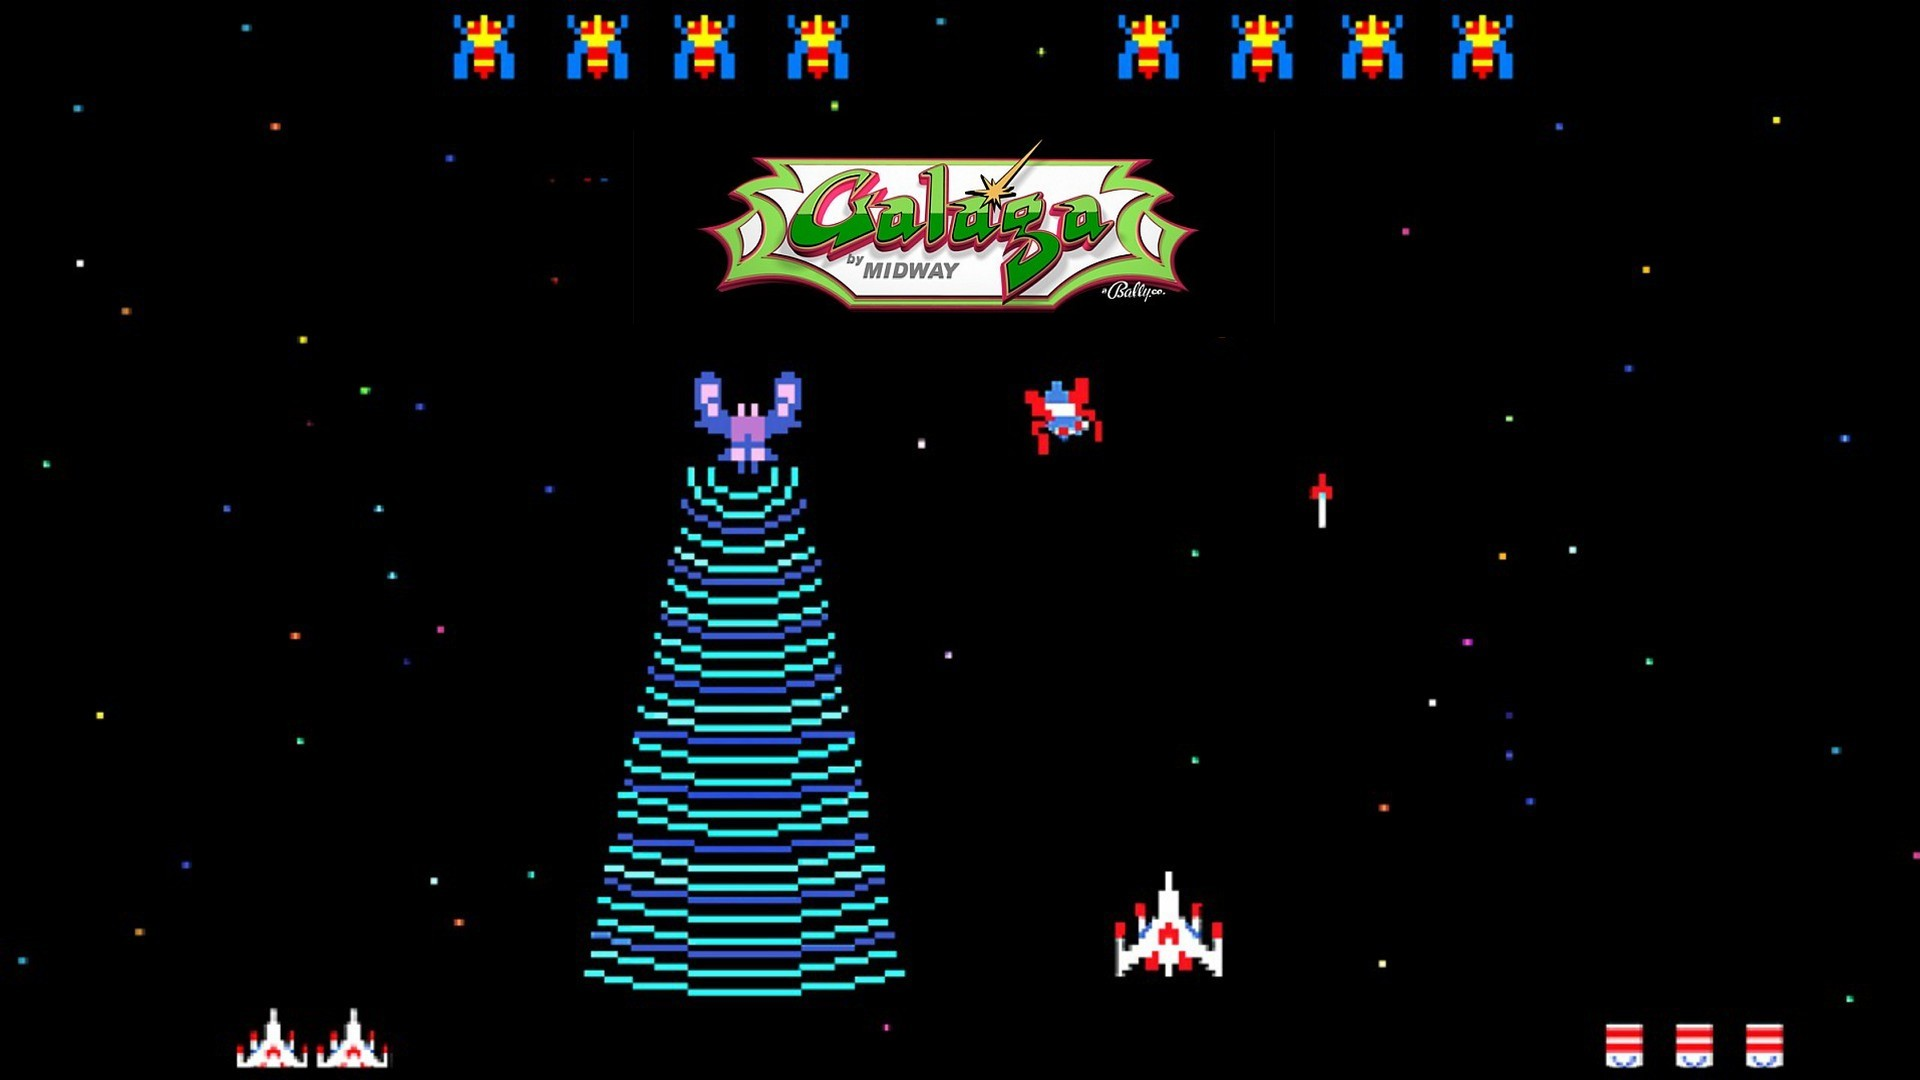 Galaga HD Wallpapers and Background Images   stmednet 1920x1080